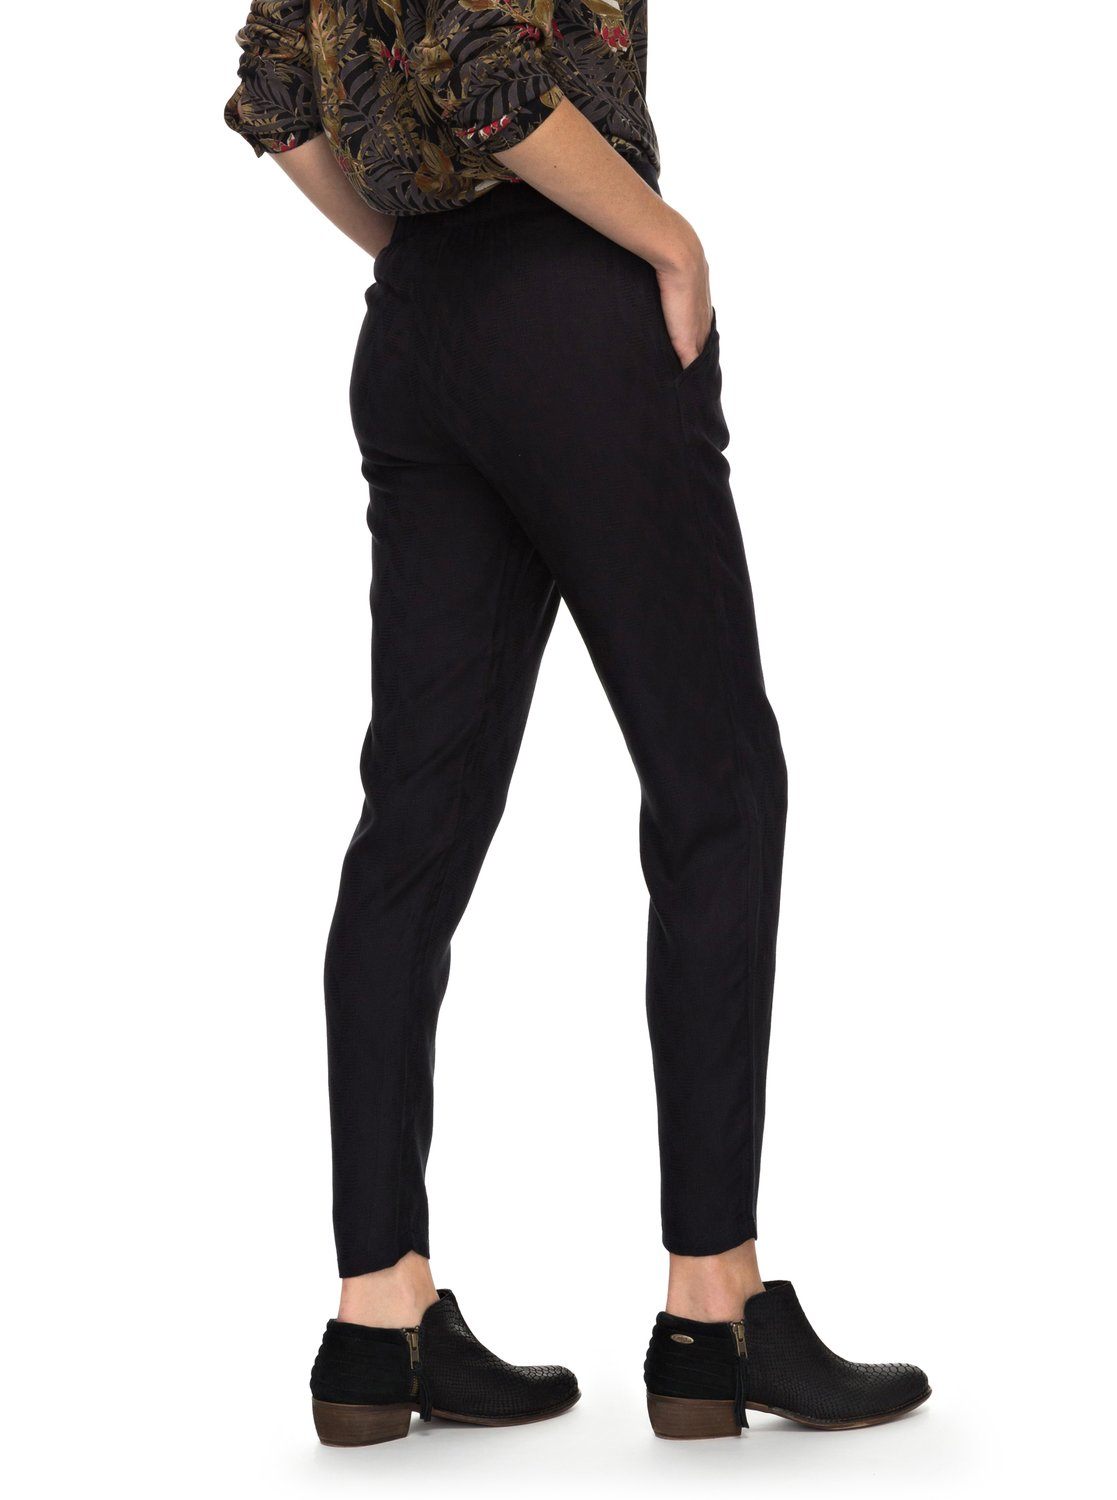 Roxy Adventure Of Liftime Trousers Ladies Trousers Anthracite